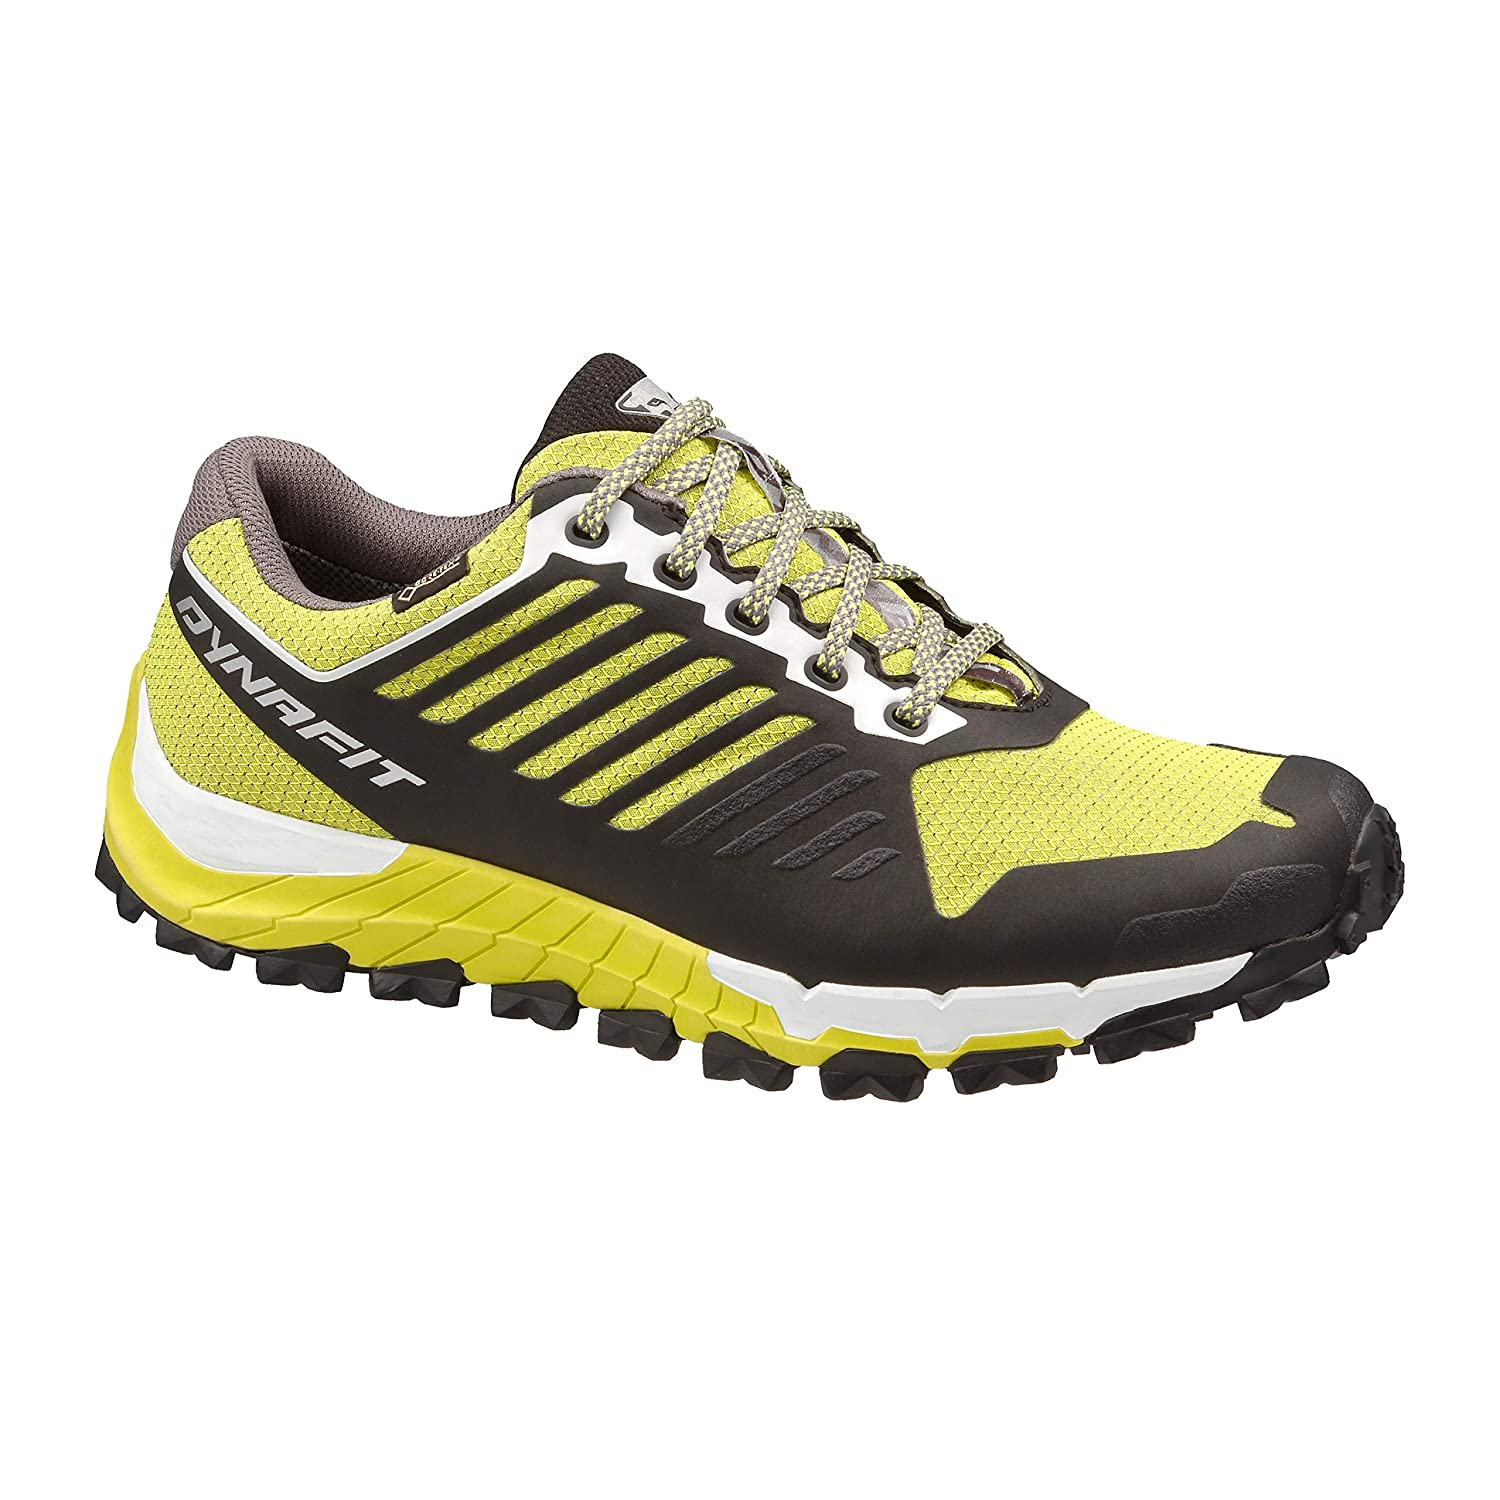 Dynafit Trailbreaker Gore-Tex Running Shoes Herren Lime Punch//Smoke Schuhgr/ö/ße UK 8 EU 42 2018 Laufsport Schuhe